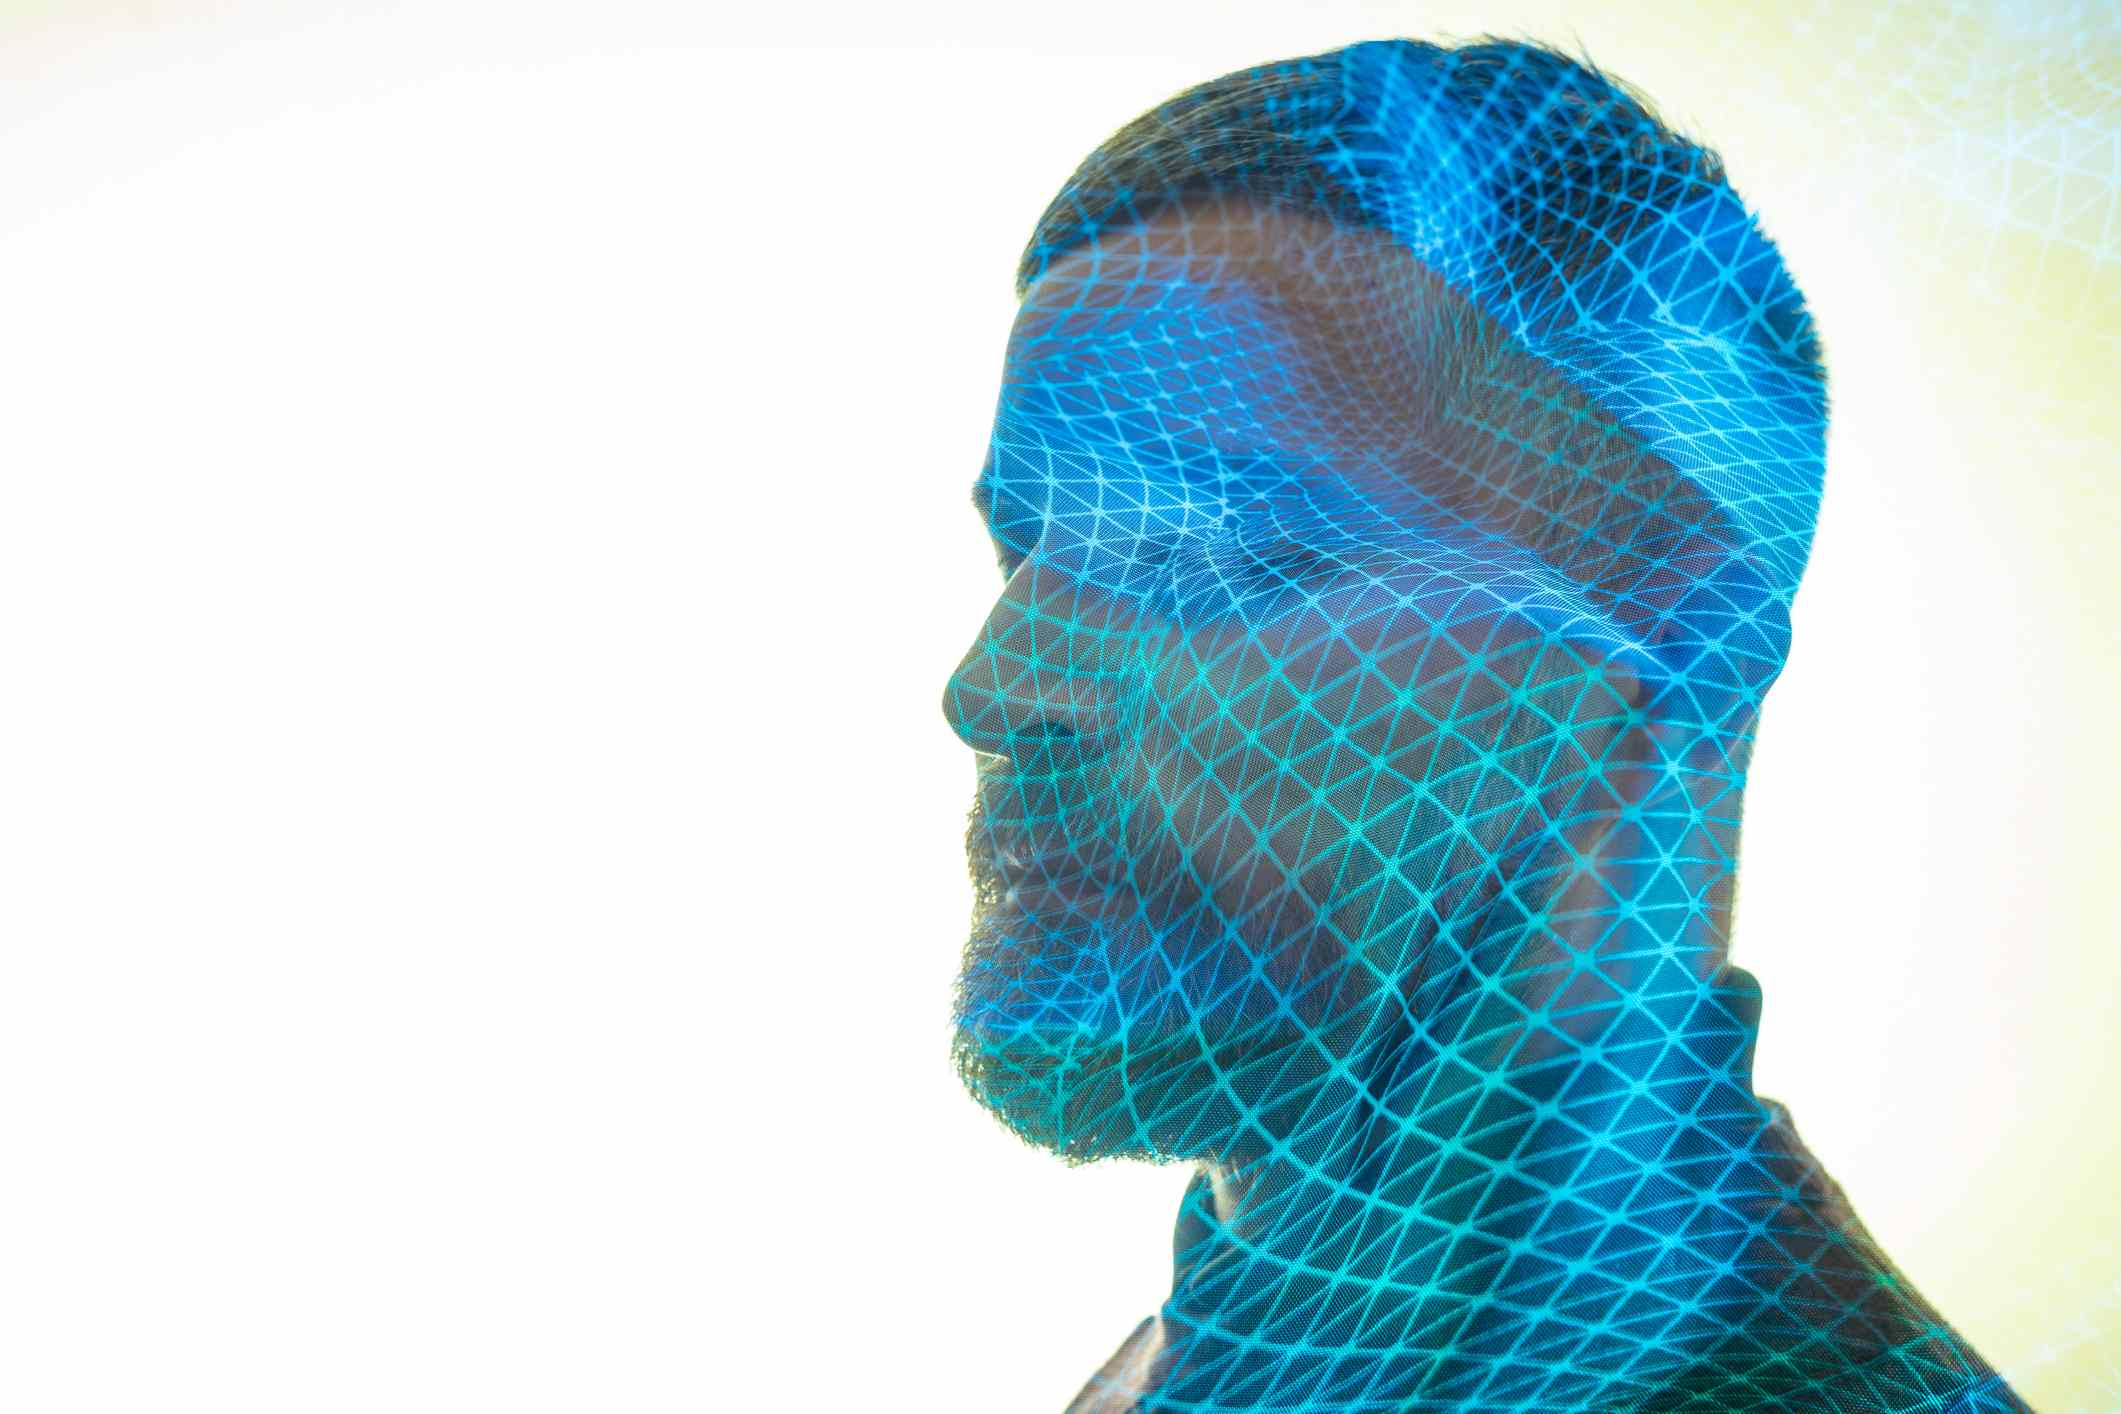 An illustration of an AI mapping and creating a deep fake face.